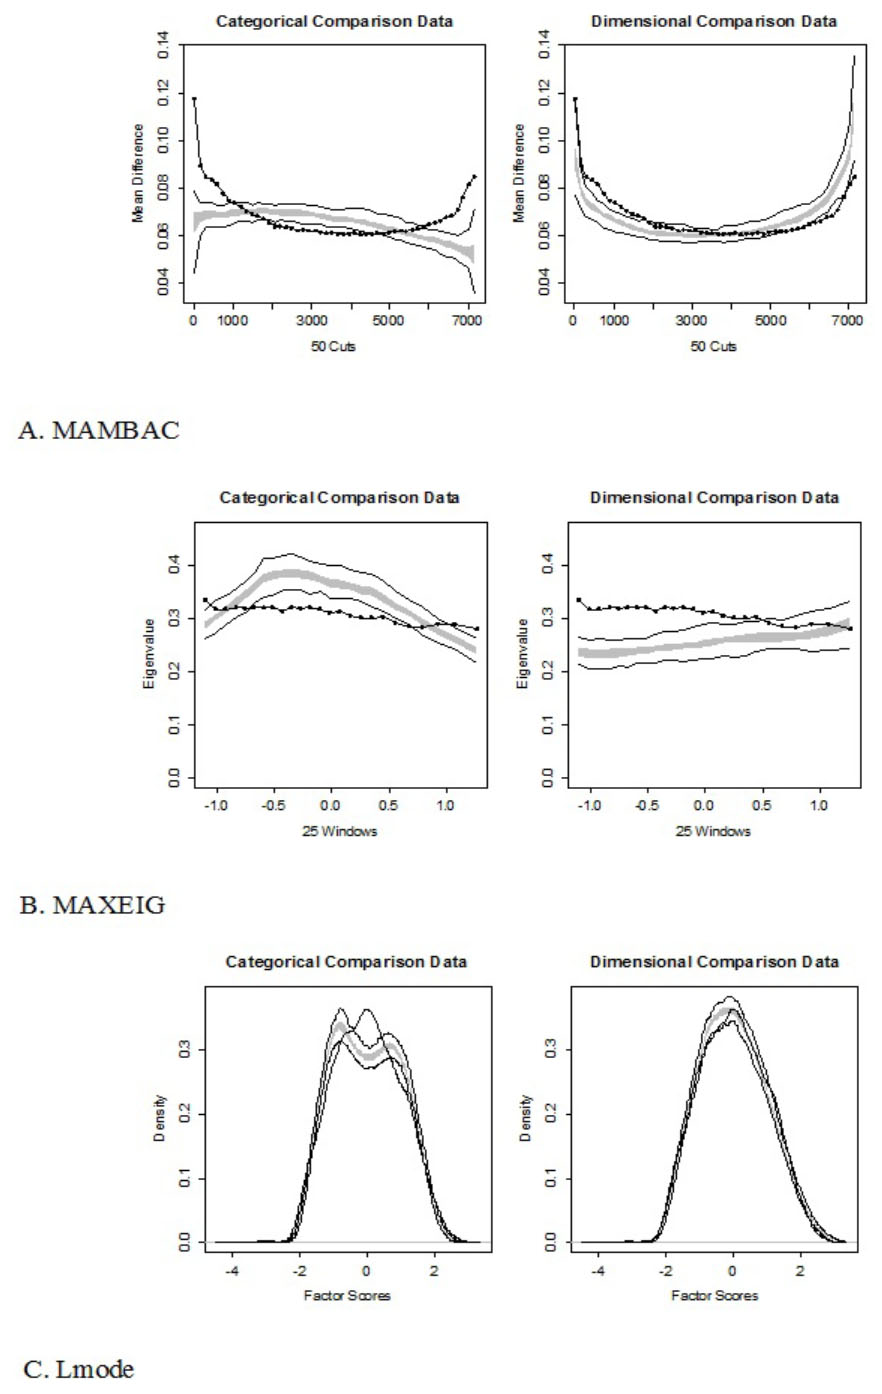 Taxometric analysis of Borderline PD indicators. Only in the Lmode method the empirical curve (dotted line) is more similar to the simulated curve (in gray, with linear contours) in the dimensional condition than in the categorical/taxonomic condition. In other cases, the results are ambiguous.